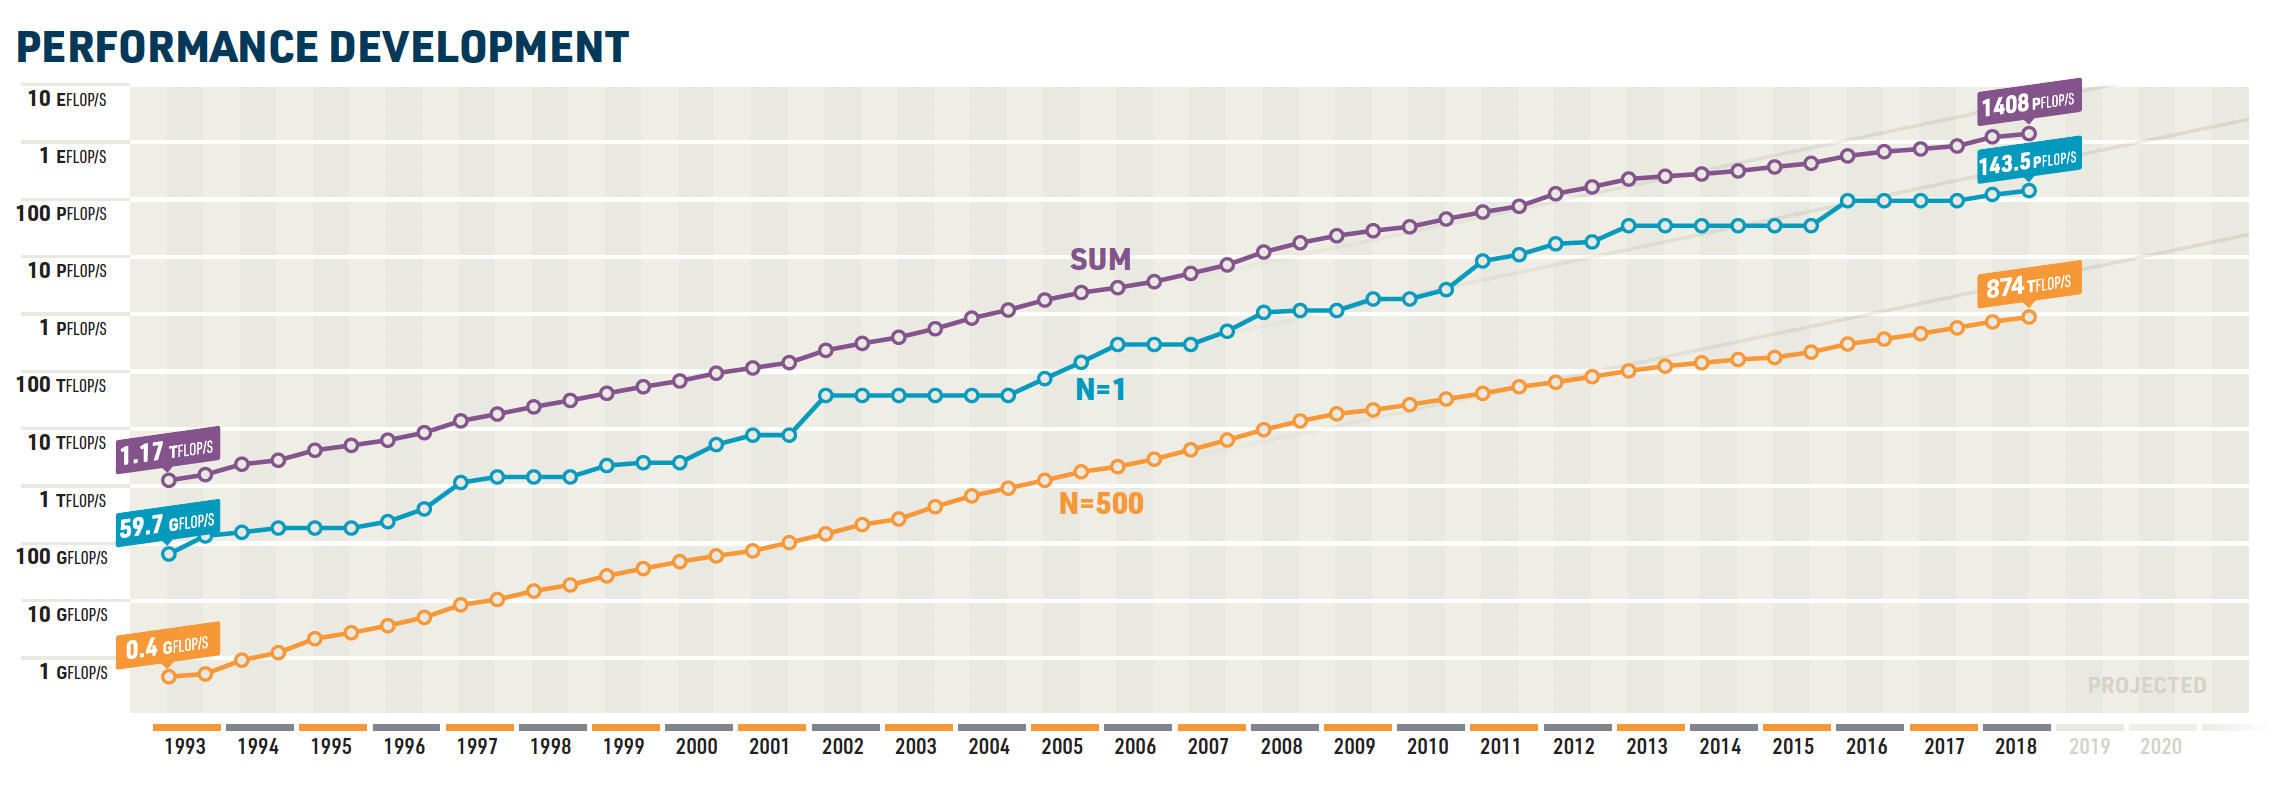 Supercomputers steadily get faster on the Top500 list of the world's fastest machines, but steady gains started faltering about a decade ago as chip performance slowed down.